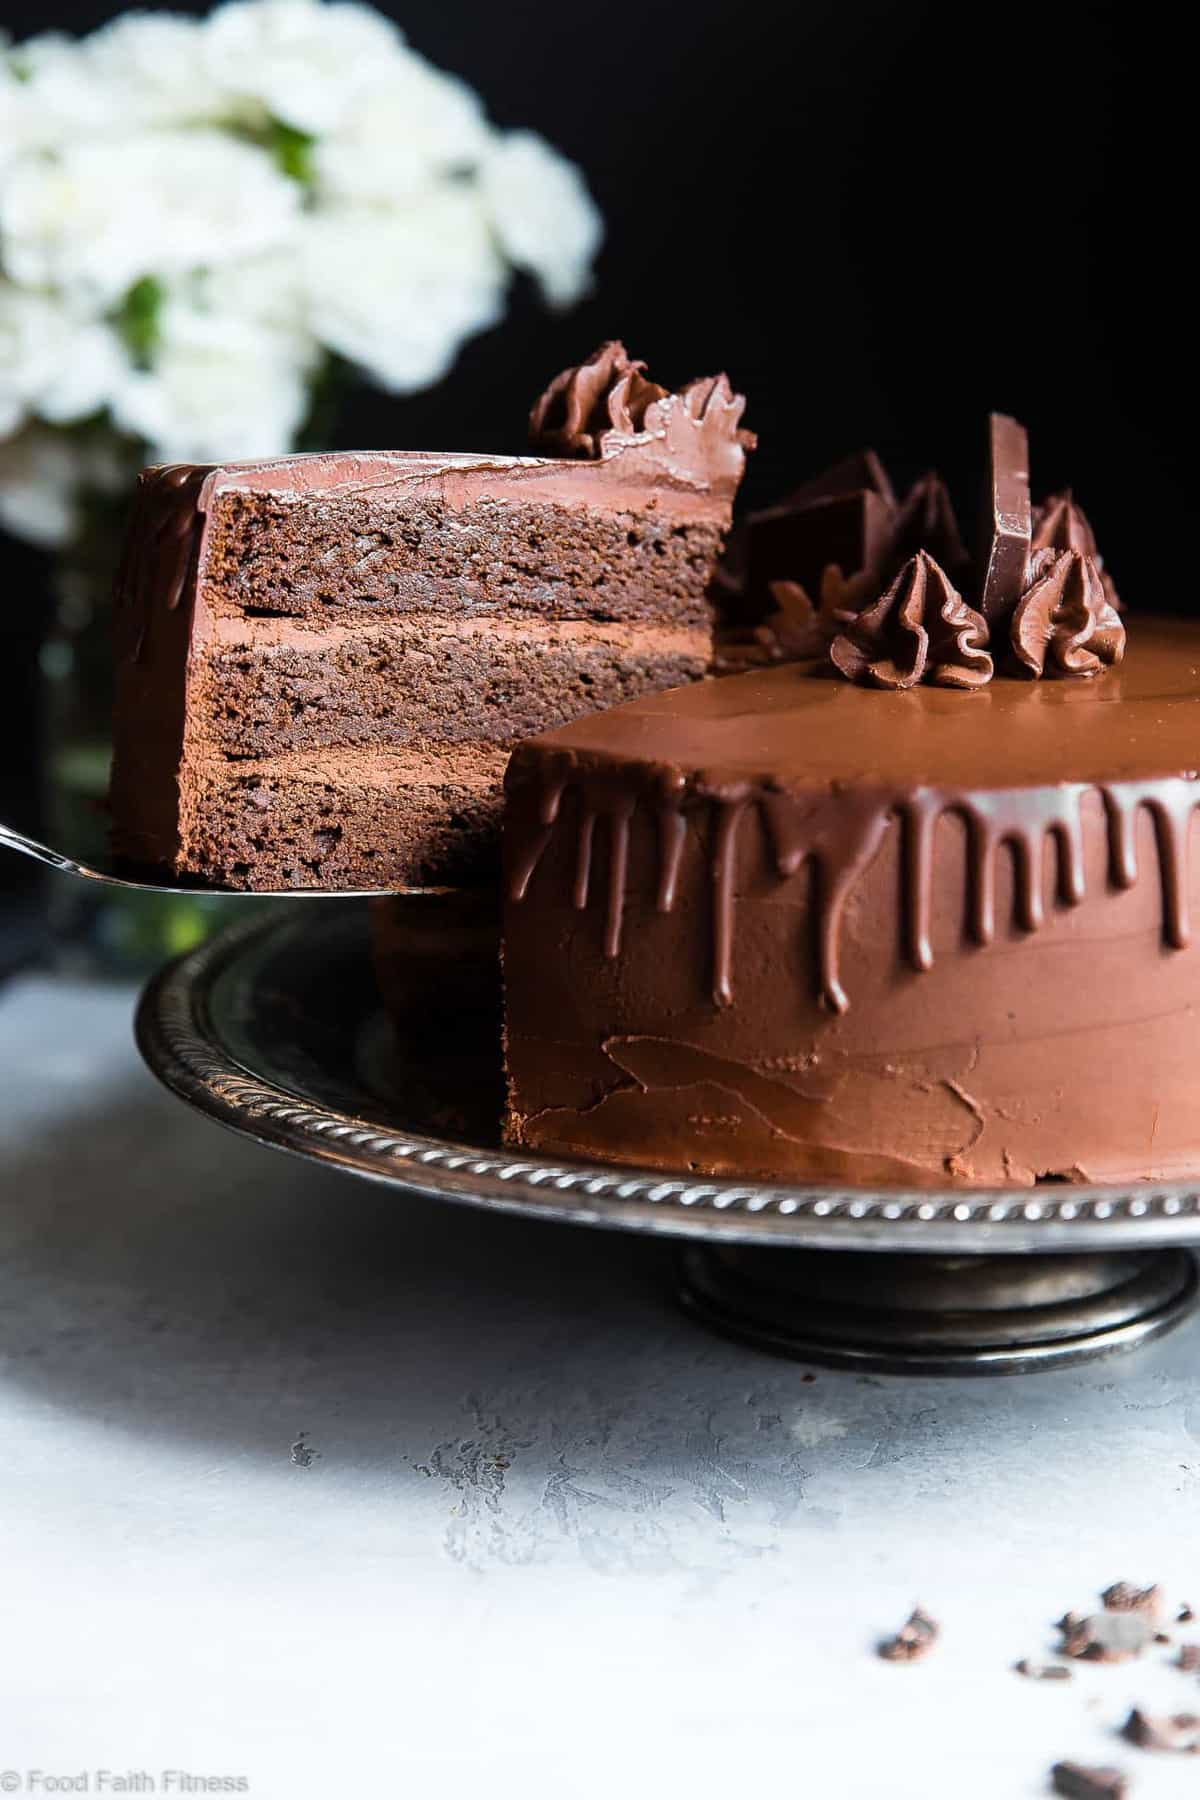 The Best Paleo Chocolate Avocado Cake with Coconut Flour - This dairy and gluten free Chocolate cake is SO fluffy and moist you'll never believe it's butter/oil free and made with avocado! The BEST healthy chocolate cake you will ever have! | #Foodfaithfitness | #Paleo #Grainfree #Dairyfree #Healthy #cake